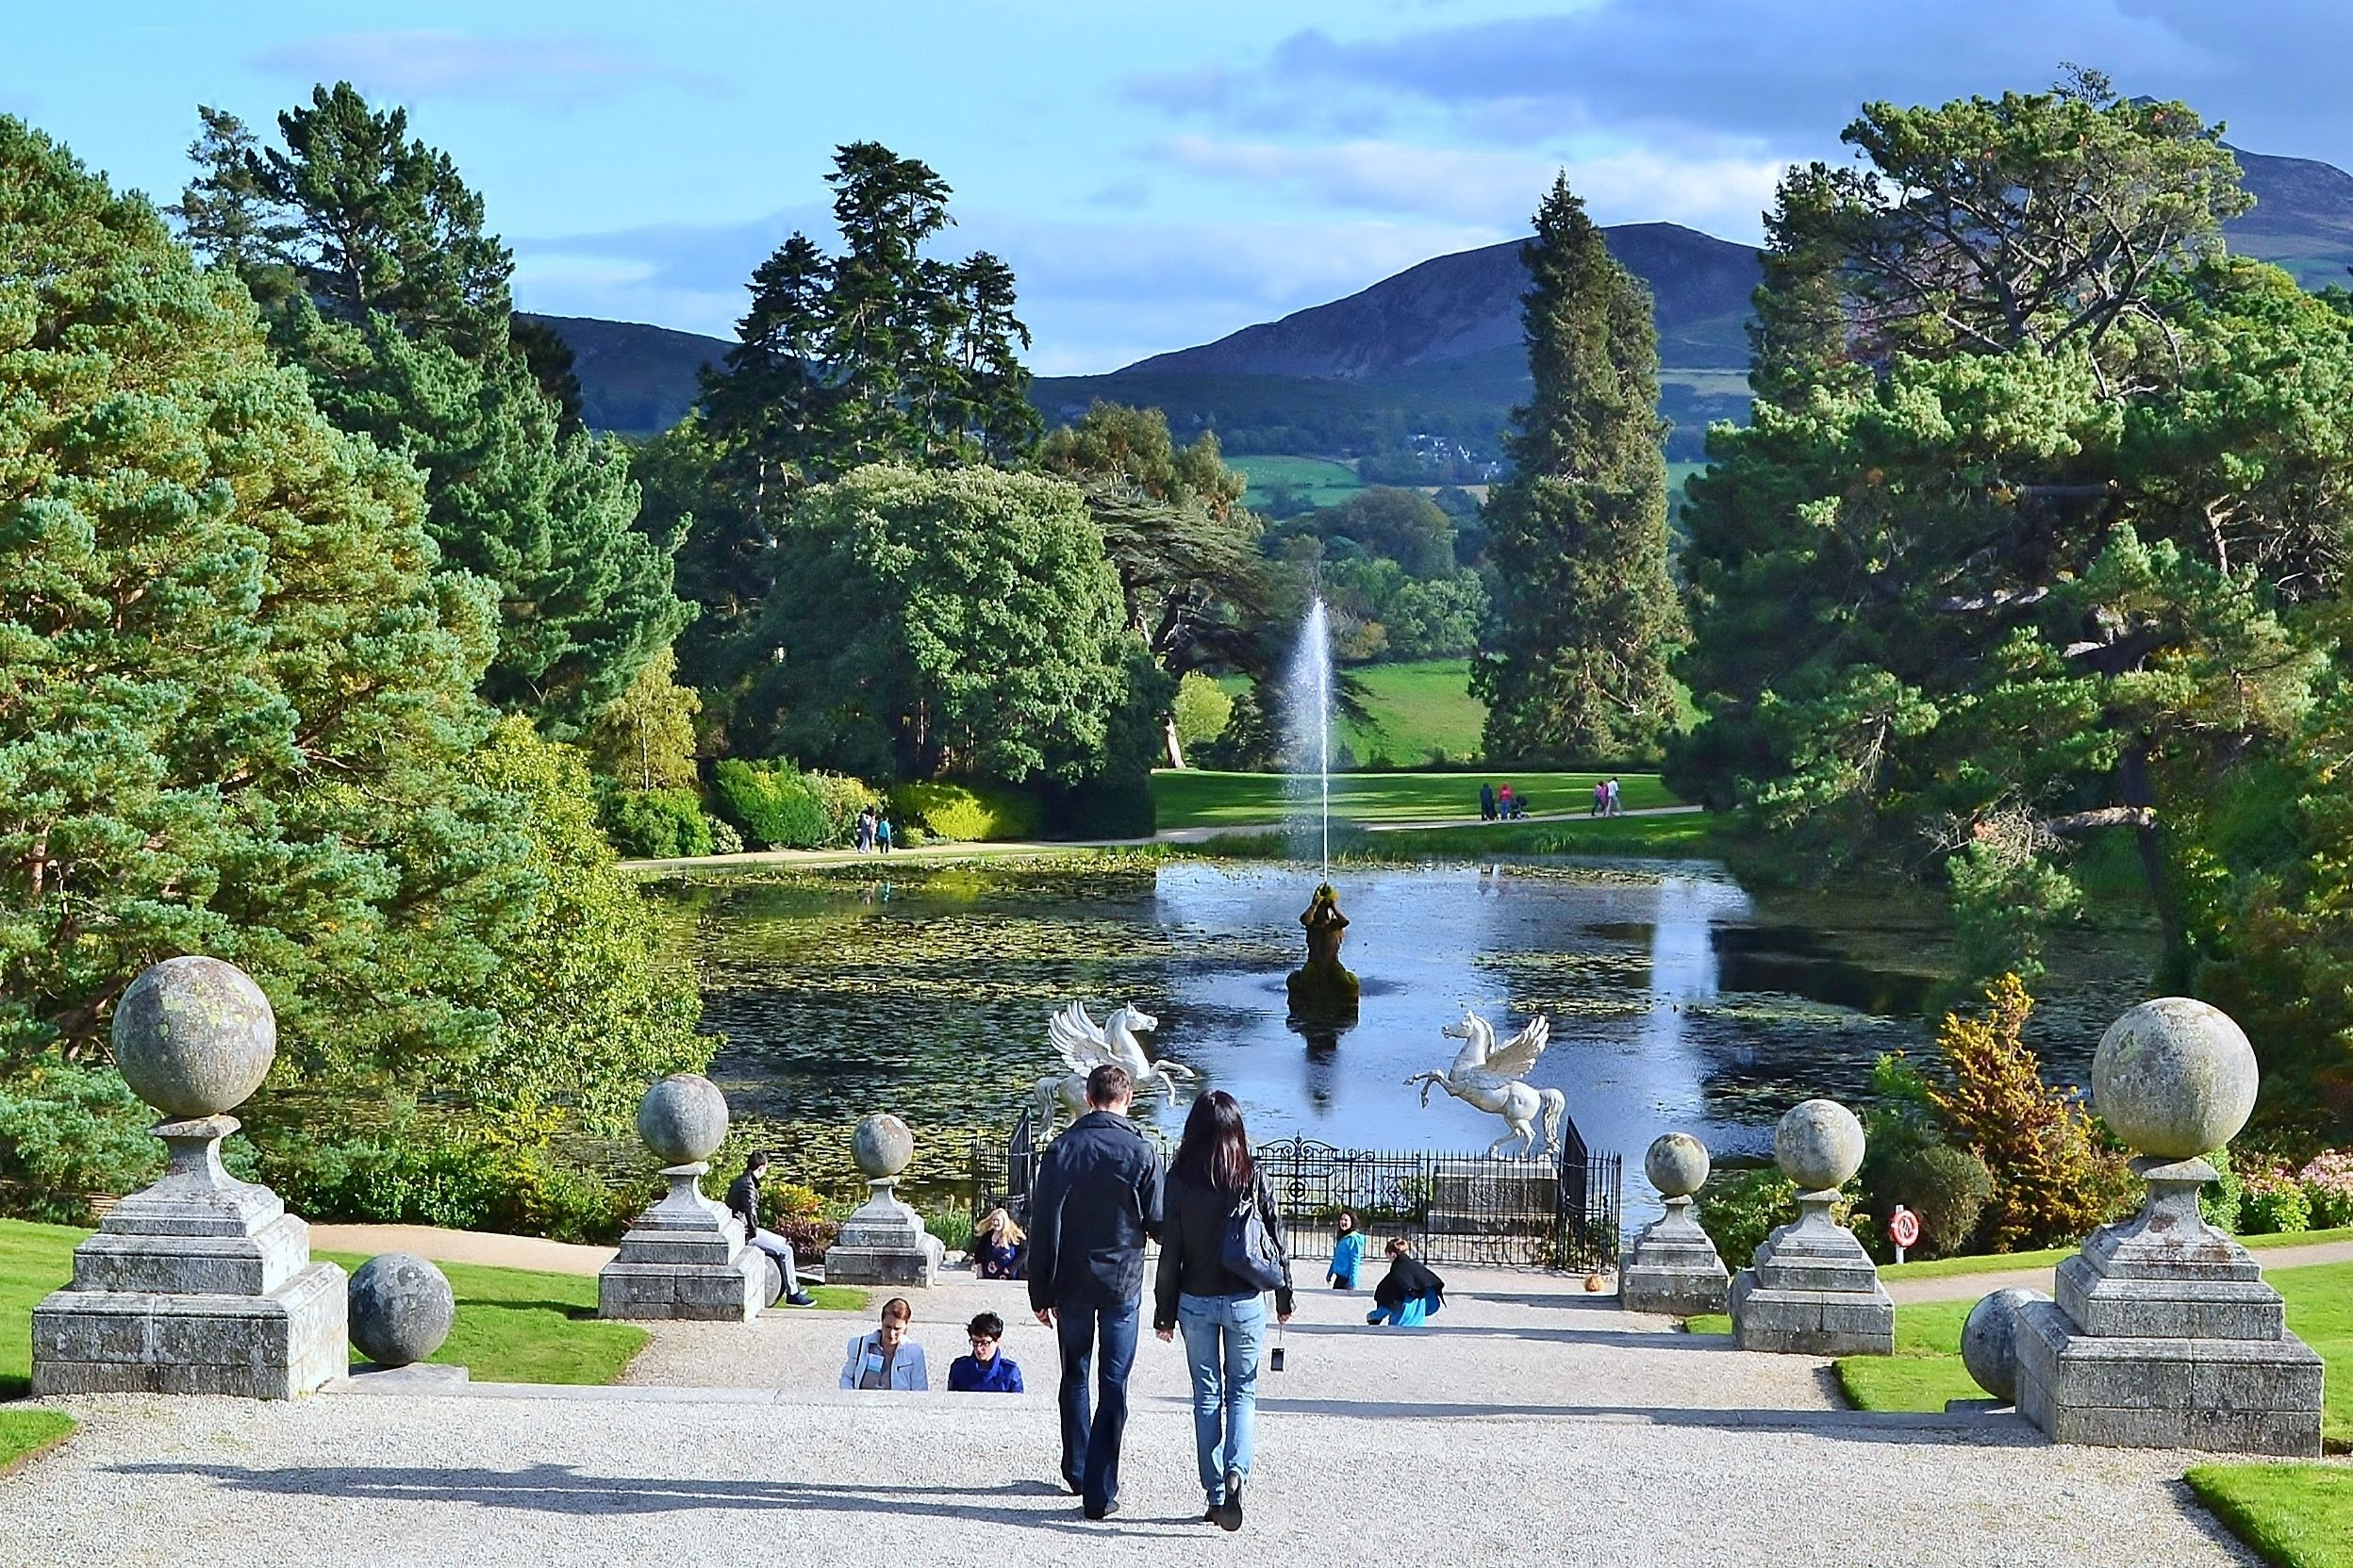 Triton Lake, Powerscourt Gardens, Wicklow, Ireland. www.powerscourt.ie # powerscourt #wicklow #ireland | Ireland homes, County wicklow, Pictures